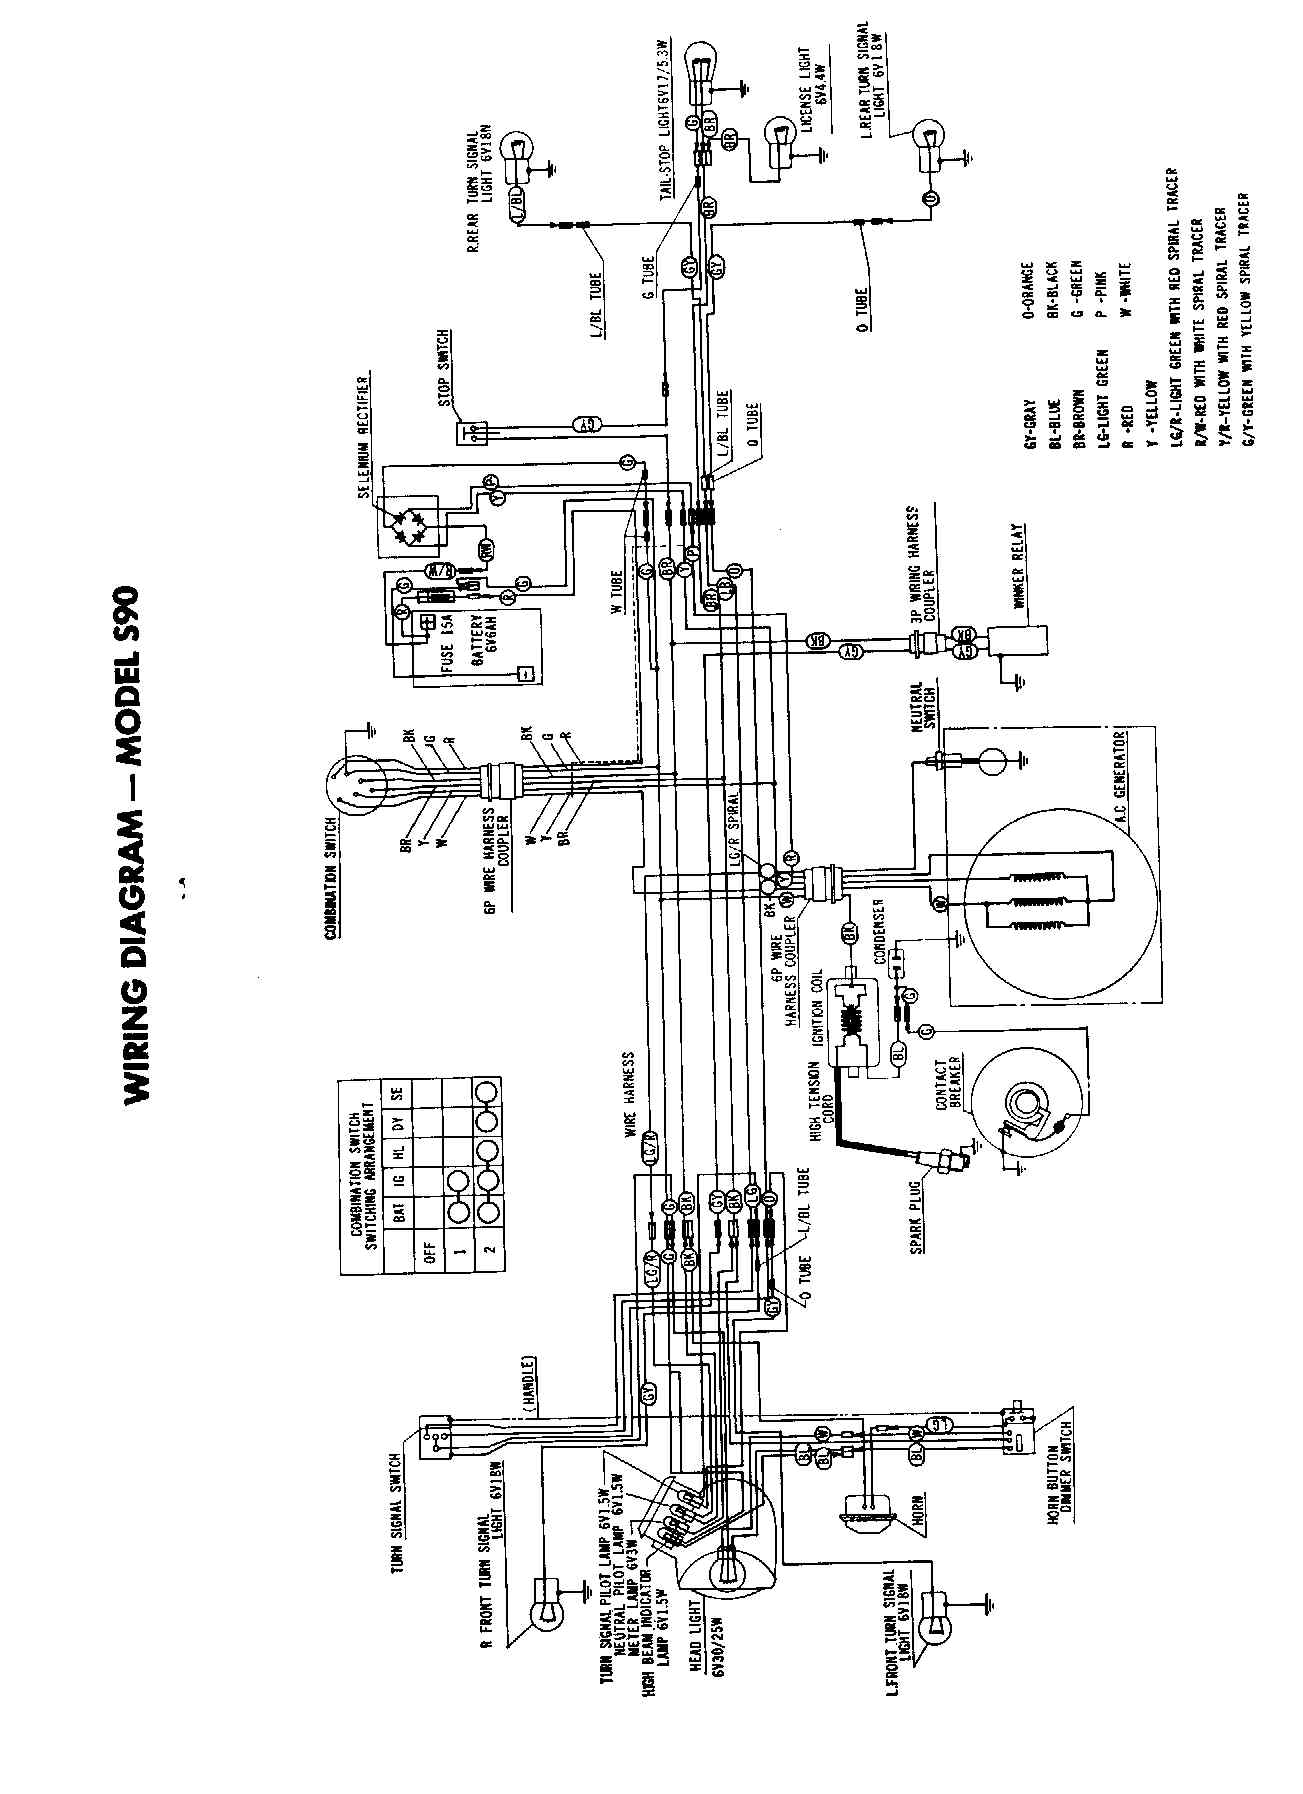 Honda Civic Wiring Diagram For